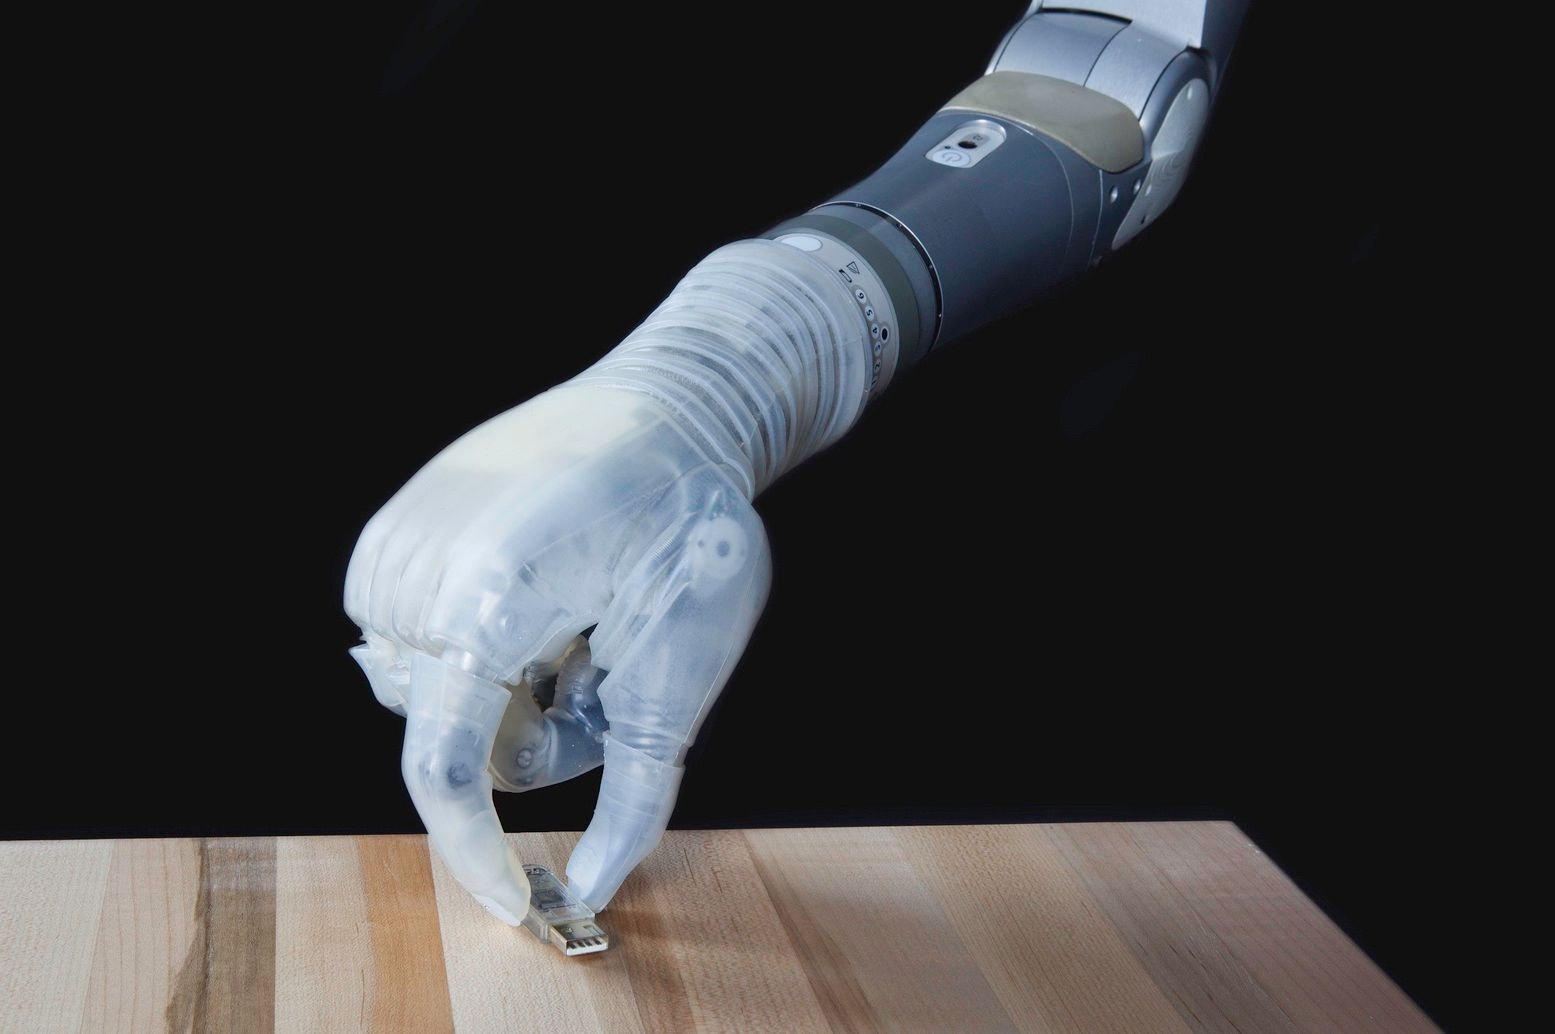 Video Friday Darpa S Luke Arm Human Support Robot And Starting A Robotics Company Ieee Spectrum